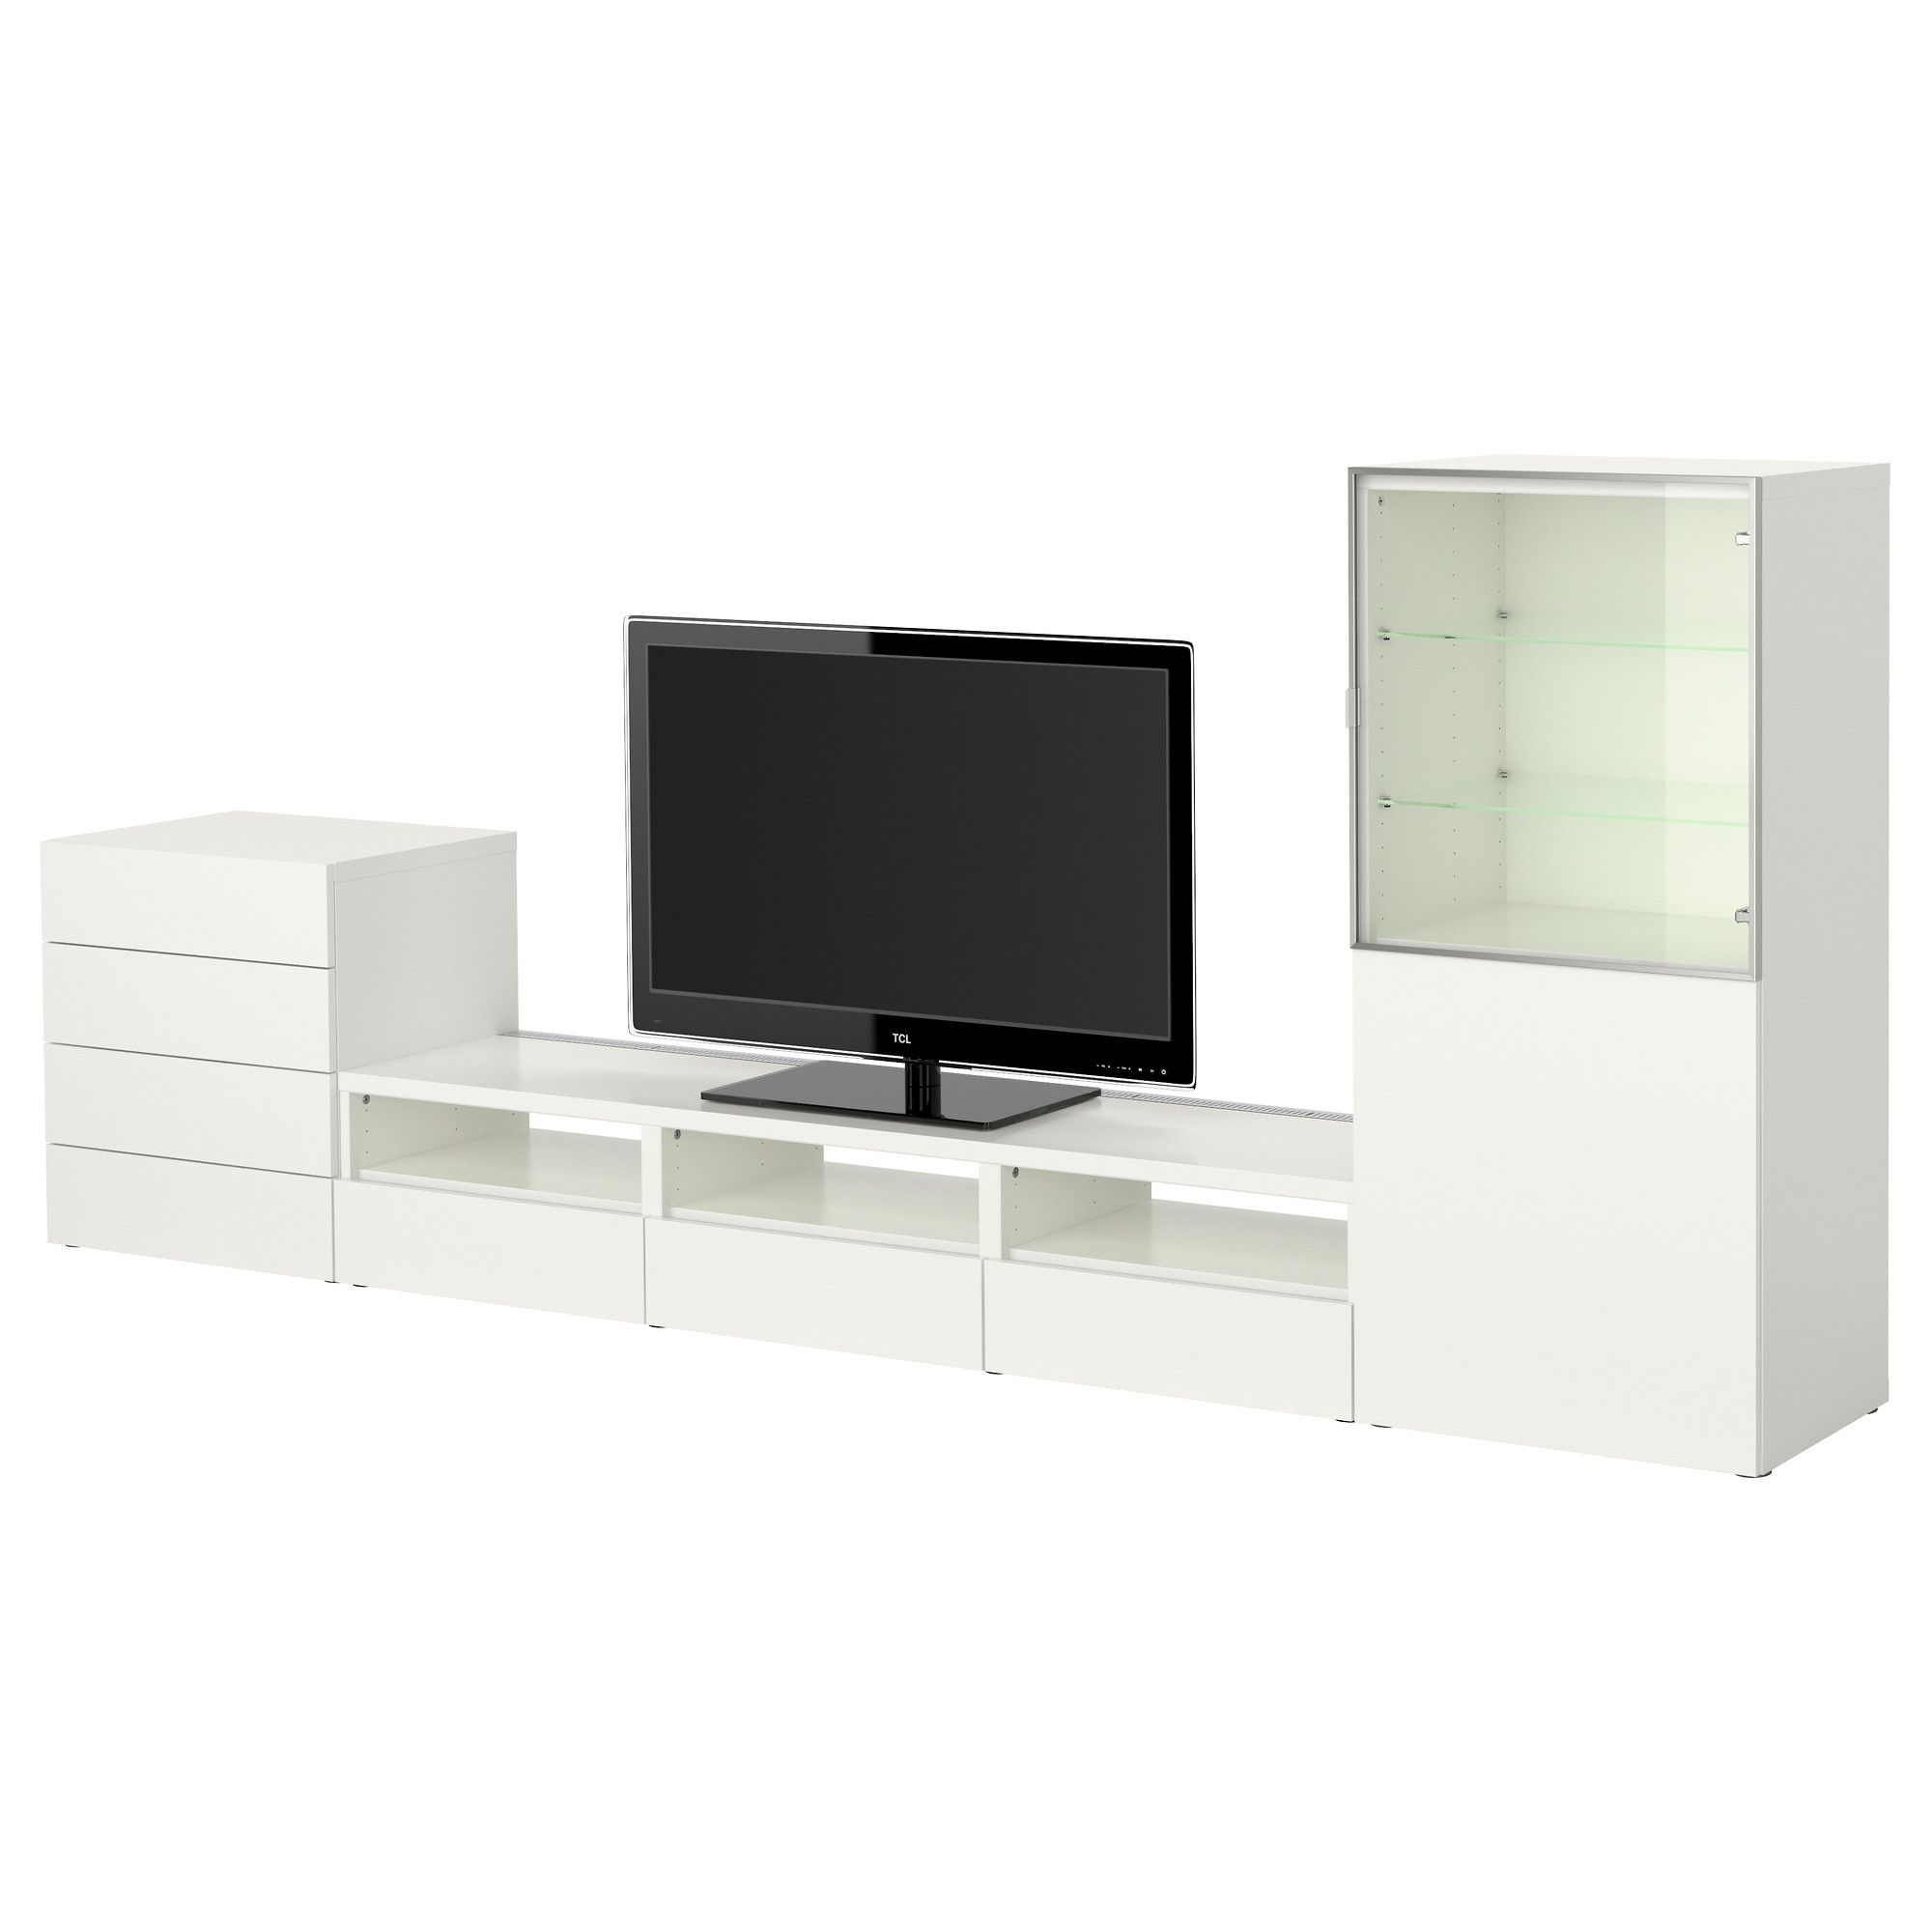 Best Tv Storage Combination White Ikea For The New House  # Meuble Tv Yucca